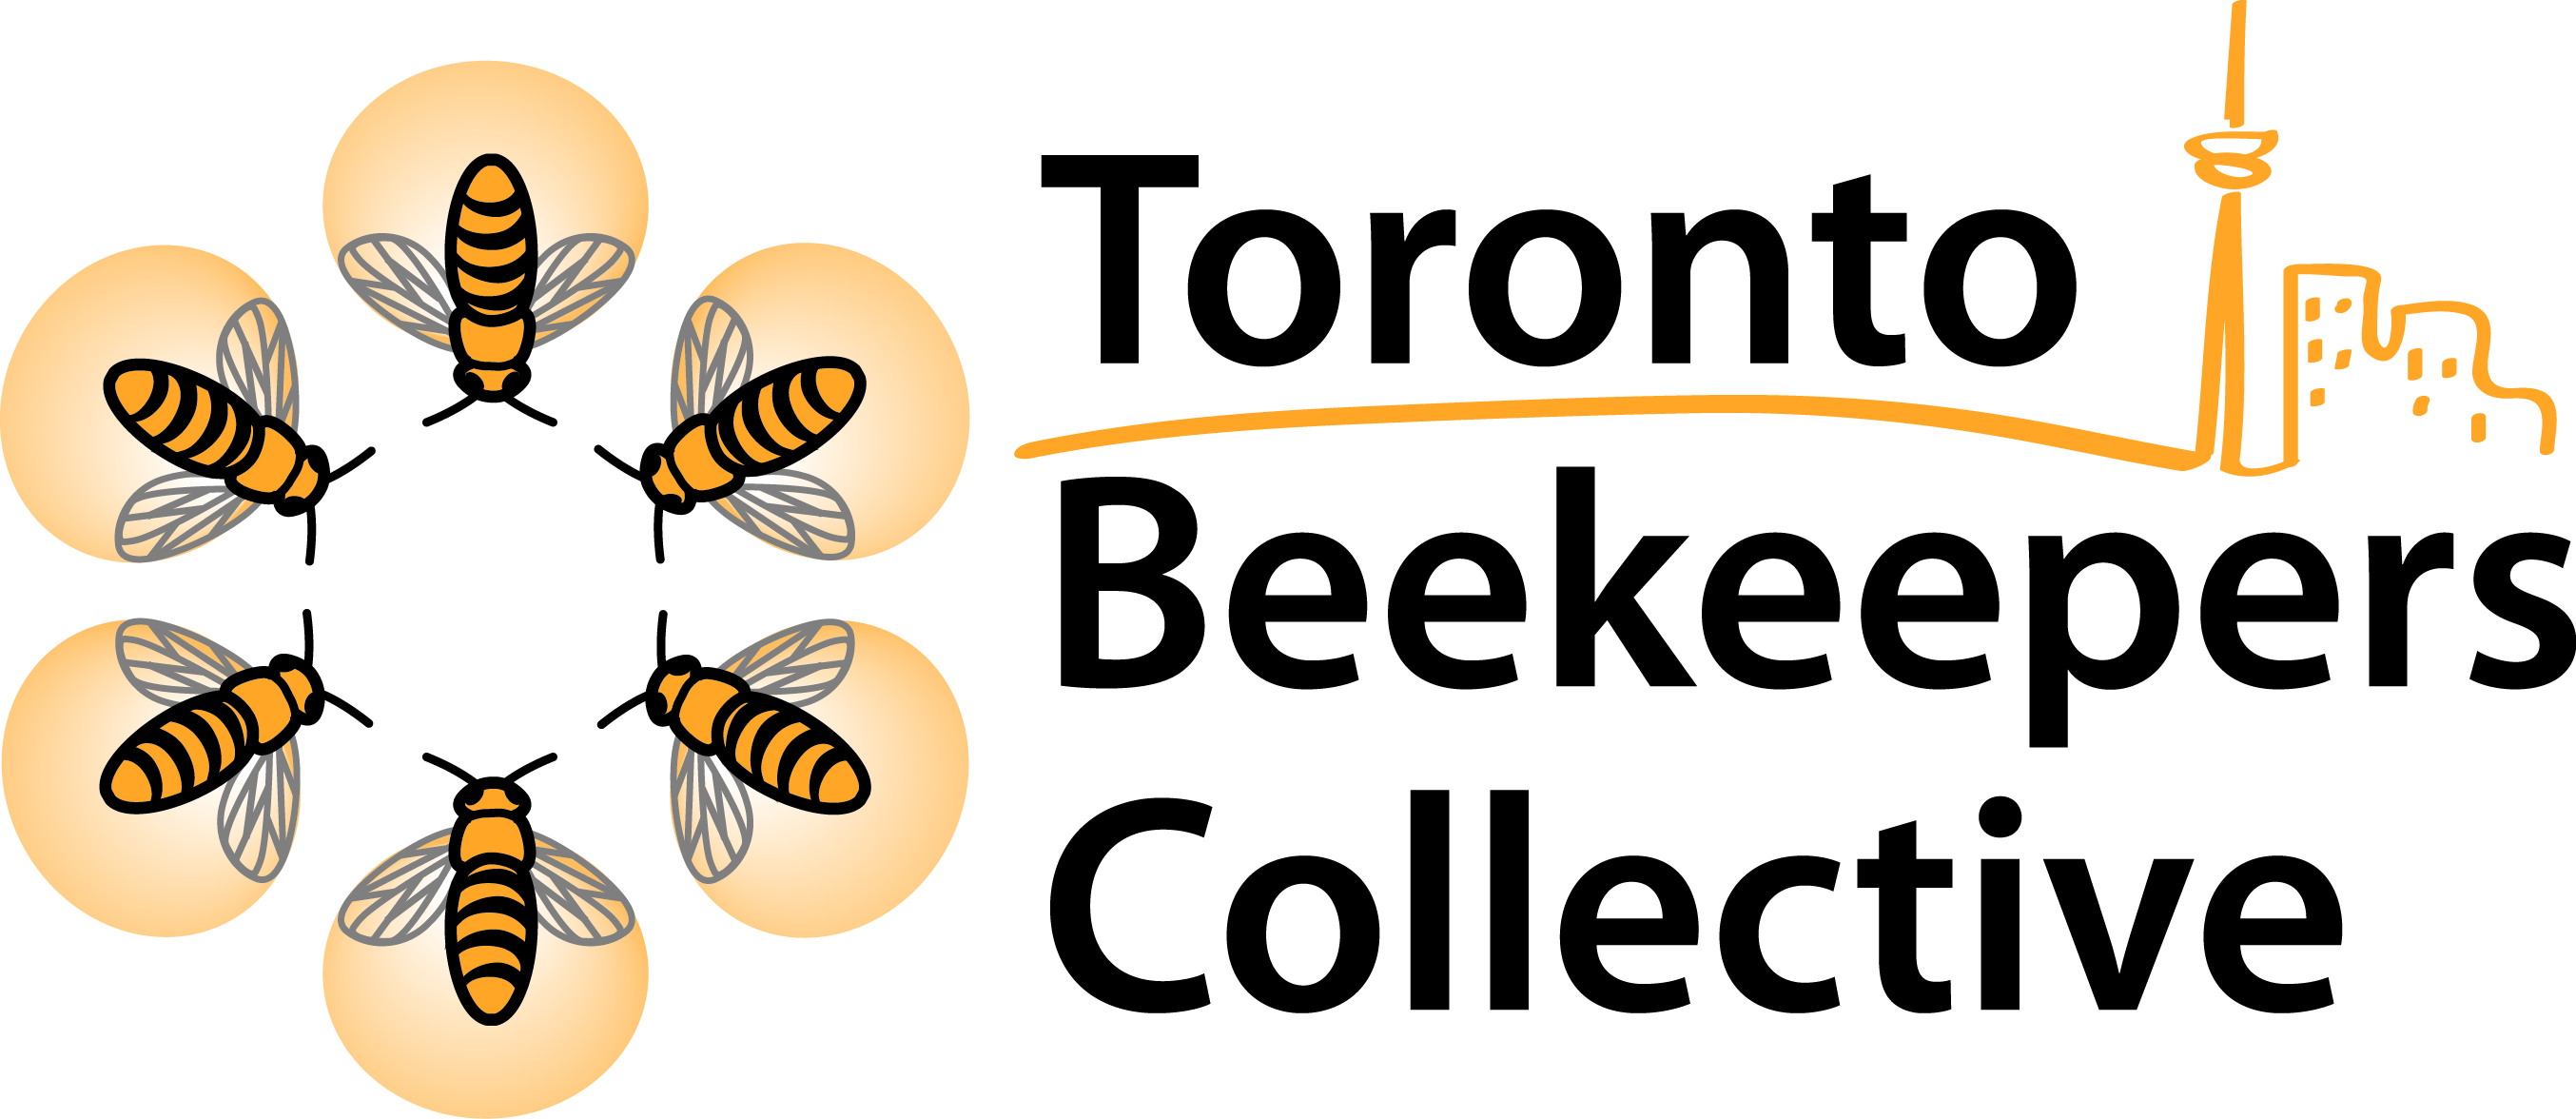 Toronto Beekeepers Collective Logo (Six bees facing each other in a hexagon, with a stylized Toronto cityscape next to them).